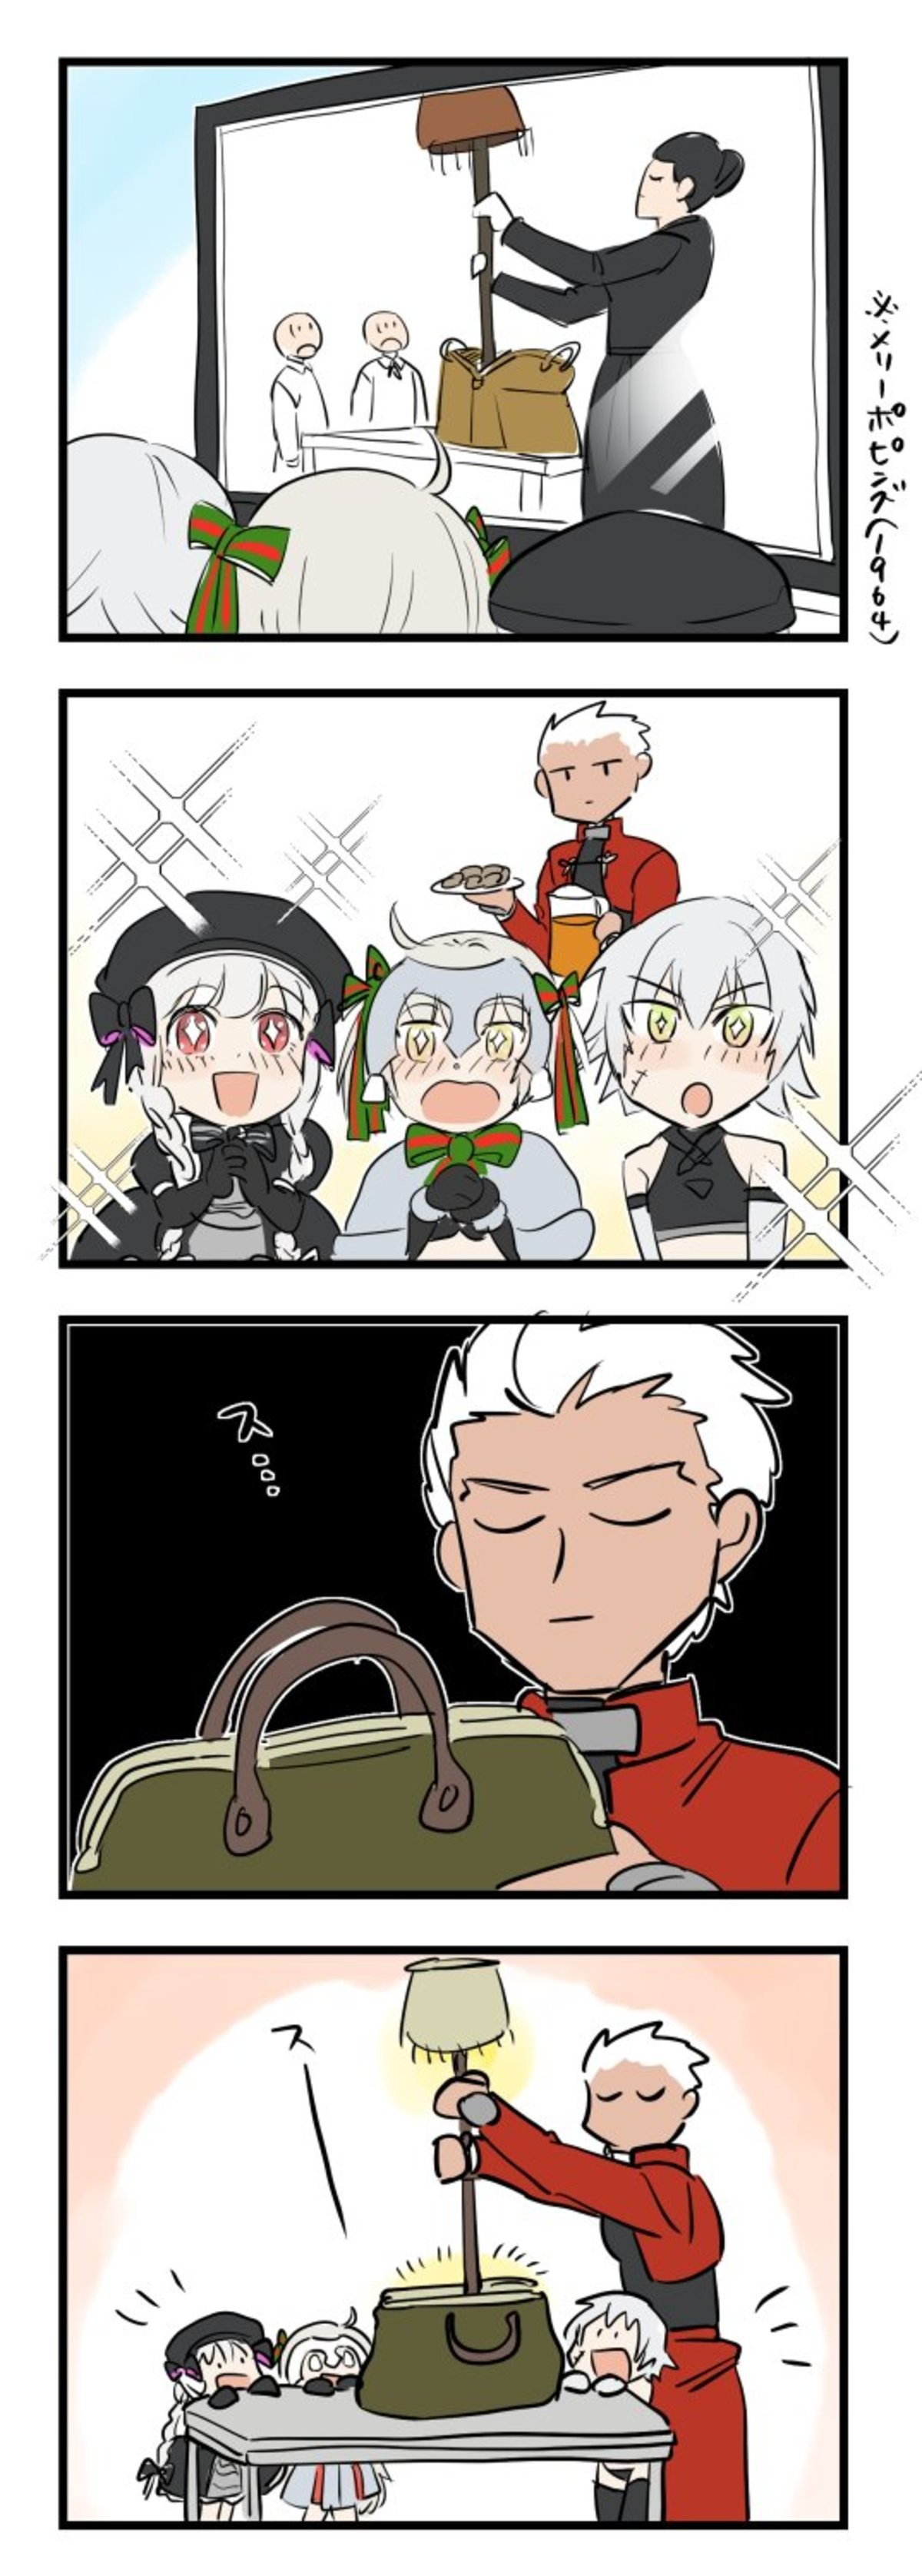 The Chaldea Daycare Trio: EMIYA is like Mary Poppins. https://twitter.com/hide_pow/status/1093450914264801280?s=21.. I made a thing